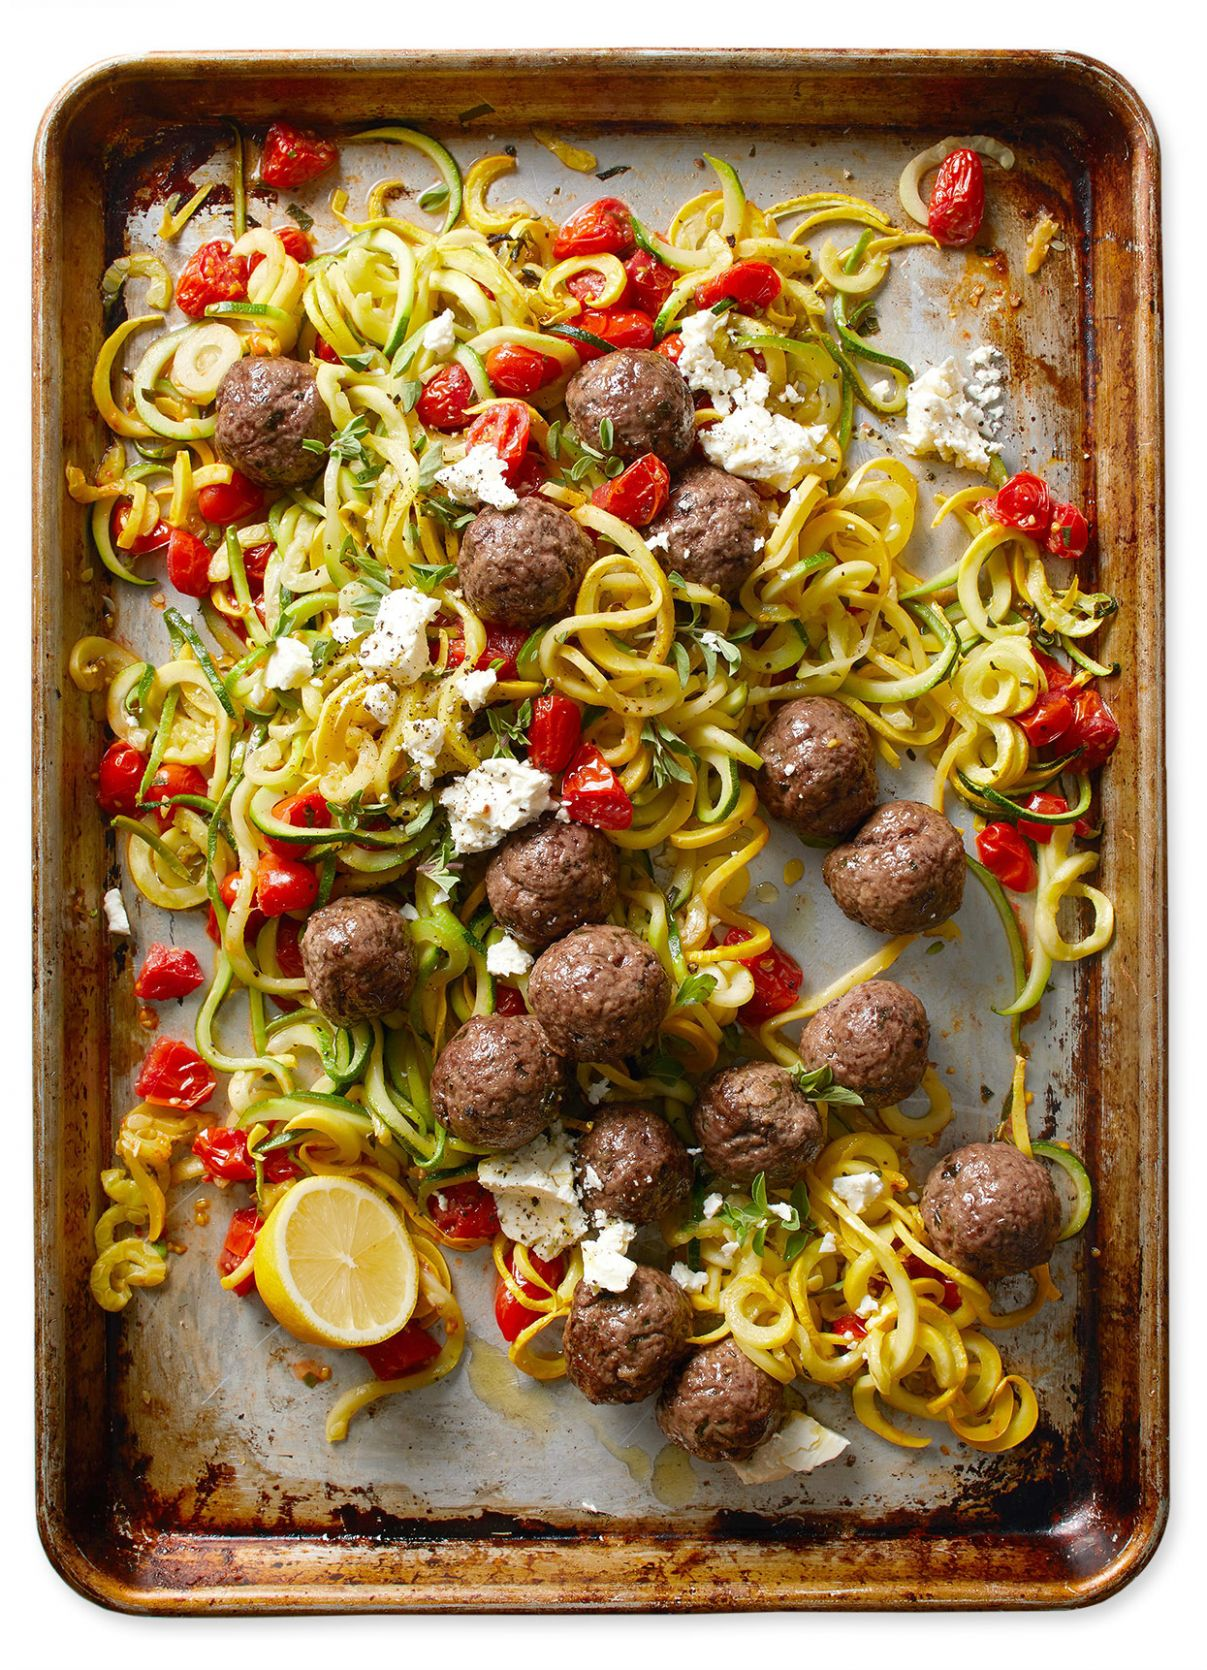 Fresh Dinner Recipes That Won't Weigh You Down | Better Homes ...